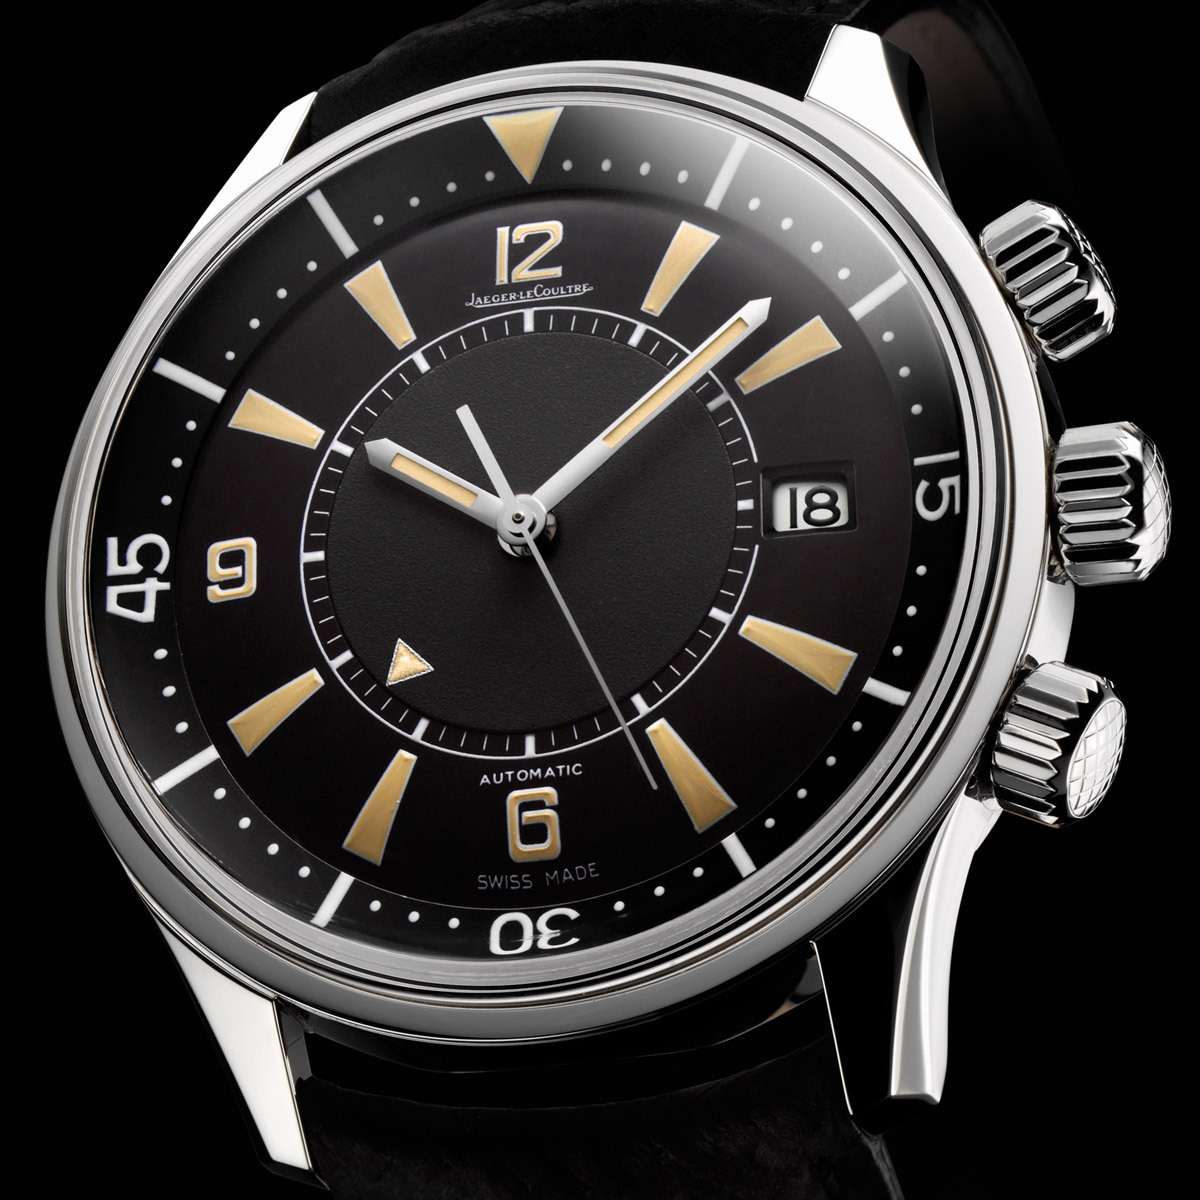 LIST: Andrew's top 5 watches from SIHH 2018, including Panerai, IWC and JLC